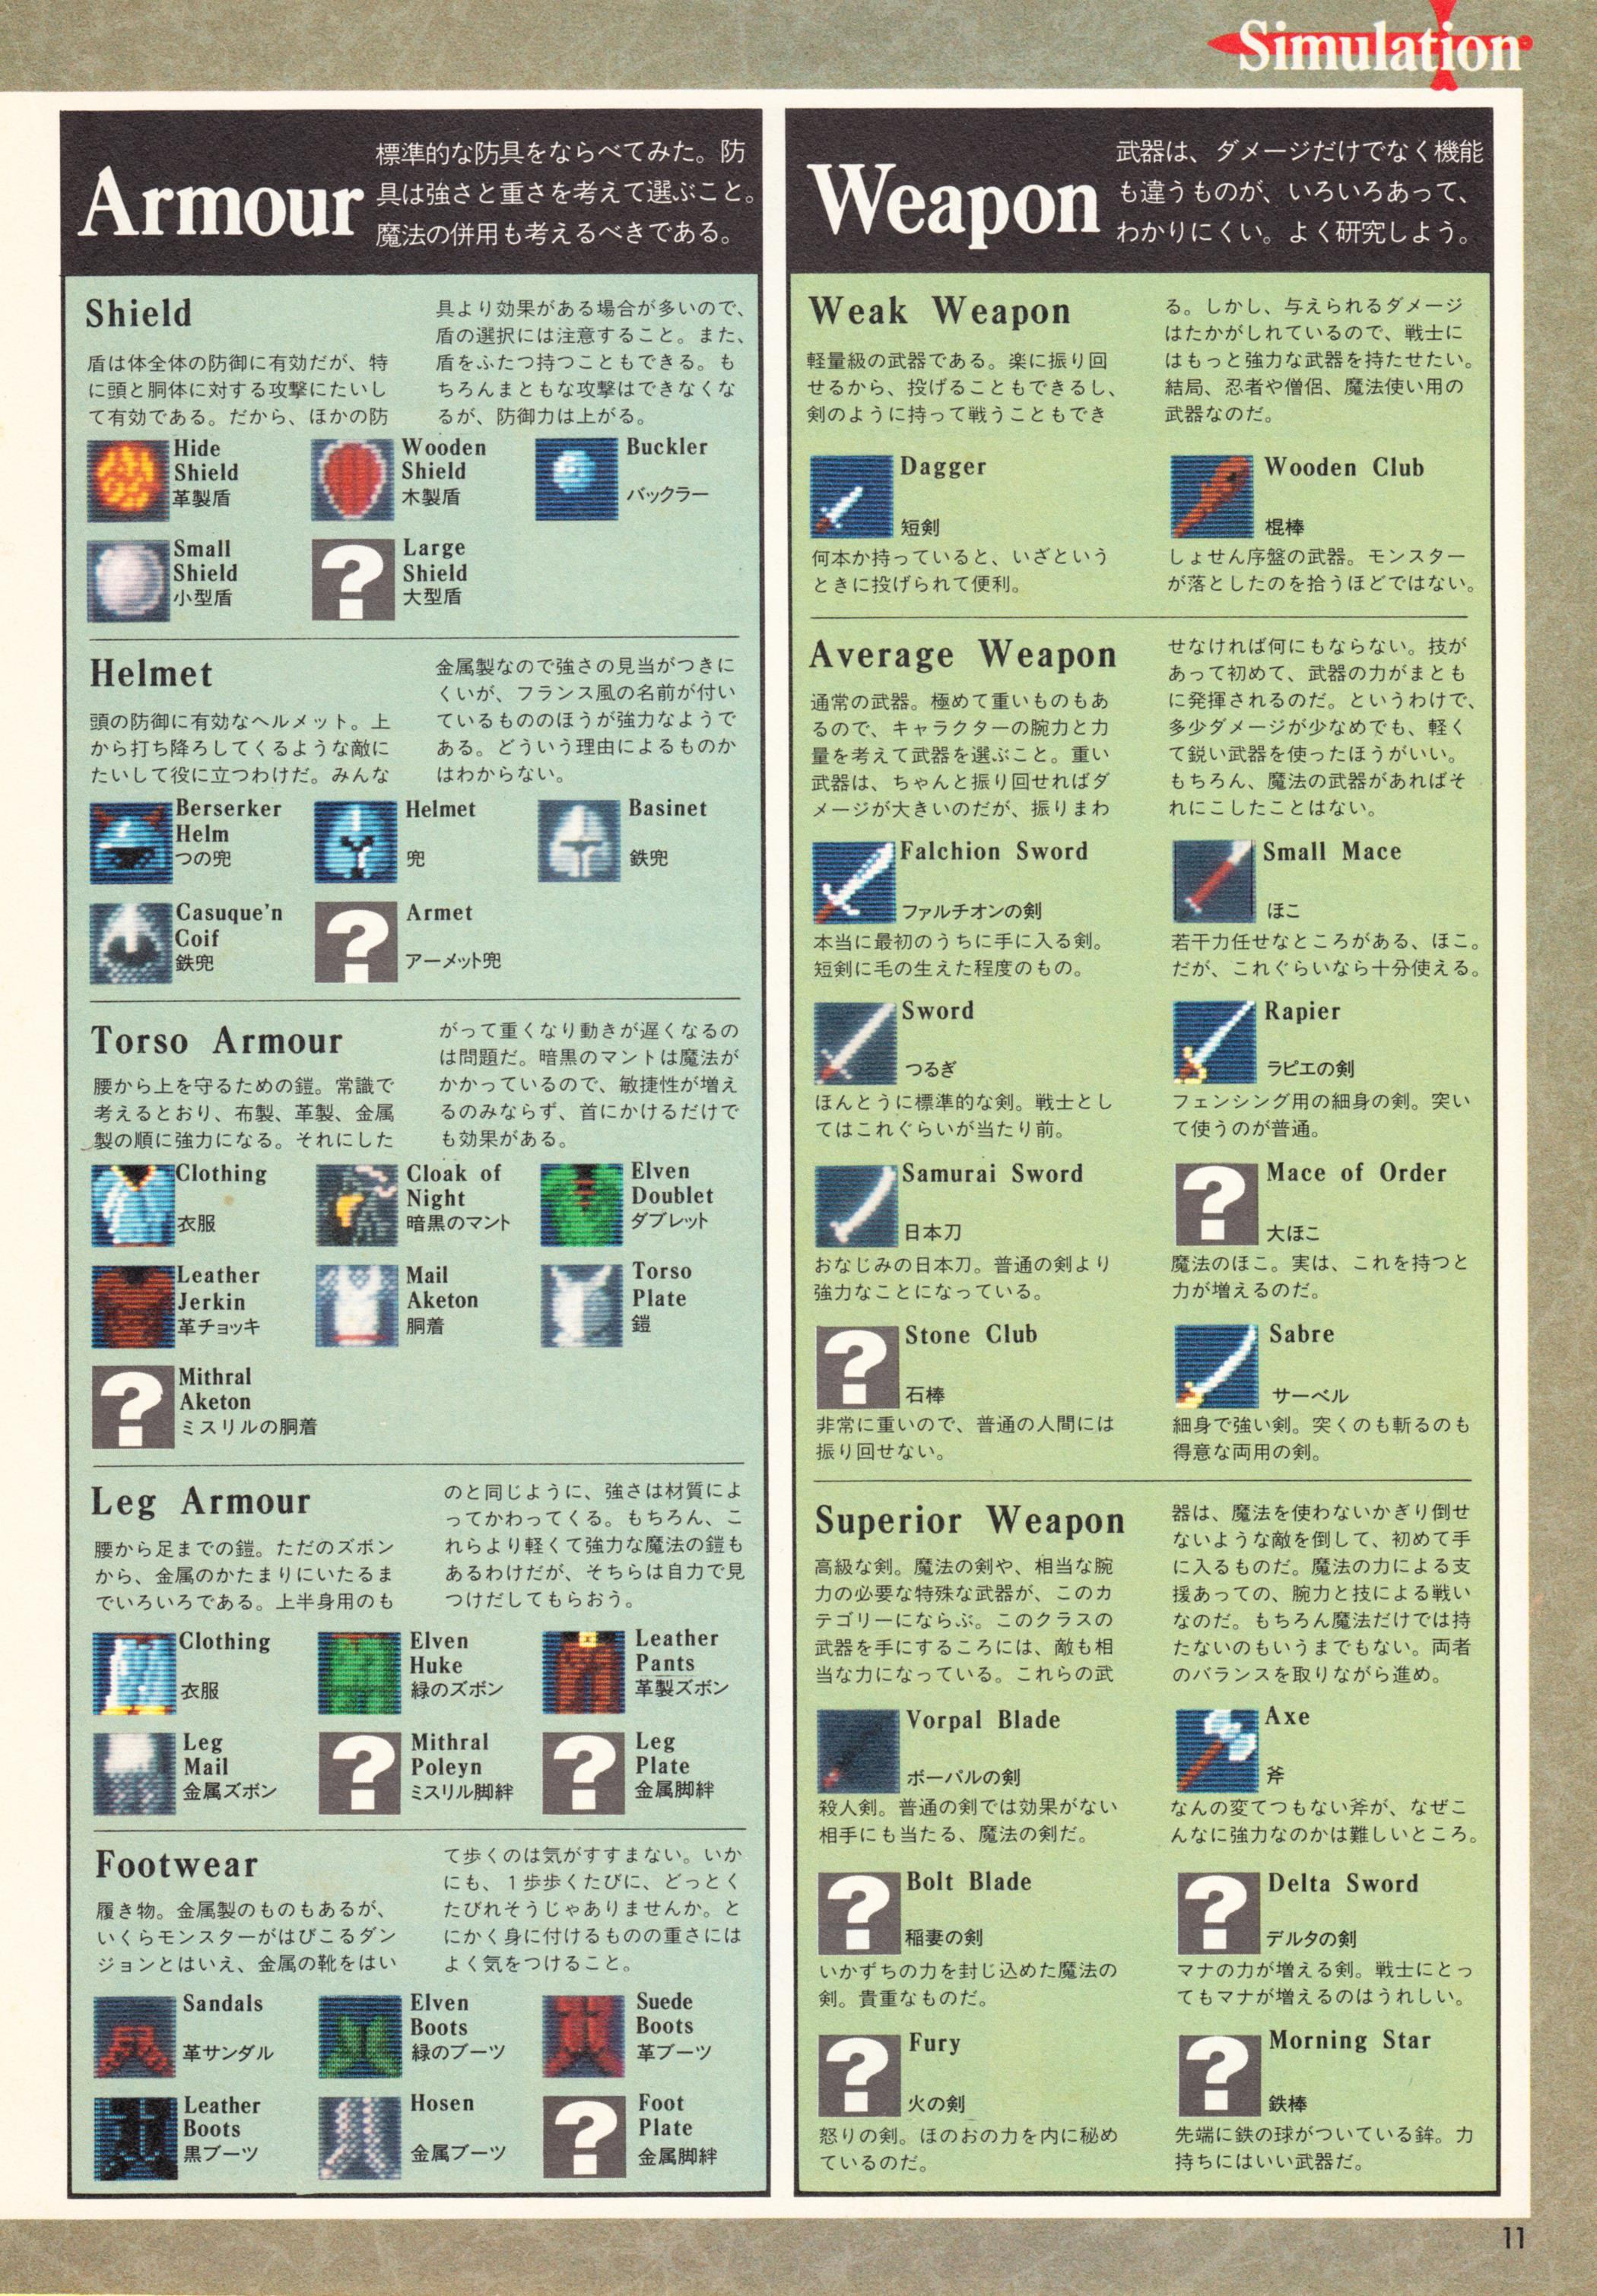 Special Supplement 2 - Dungeon Master Guide published in Japanese magazine 'Login', Vol 9 No 3 02 February 1990, Page 11